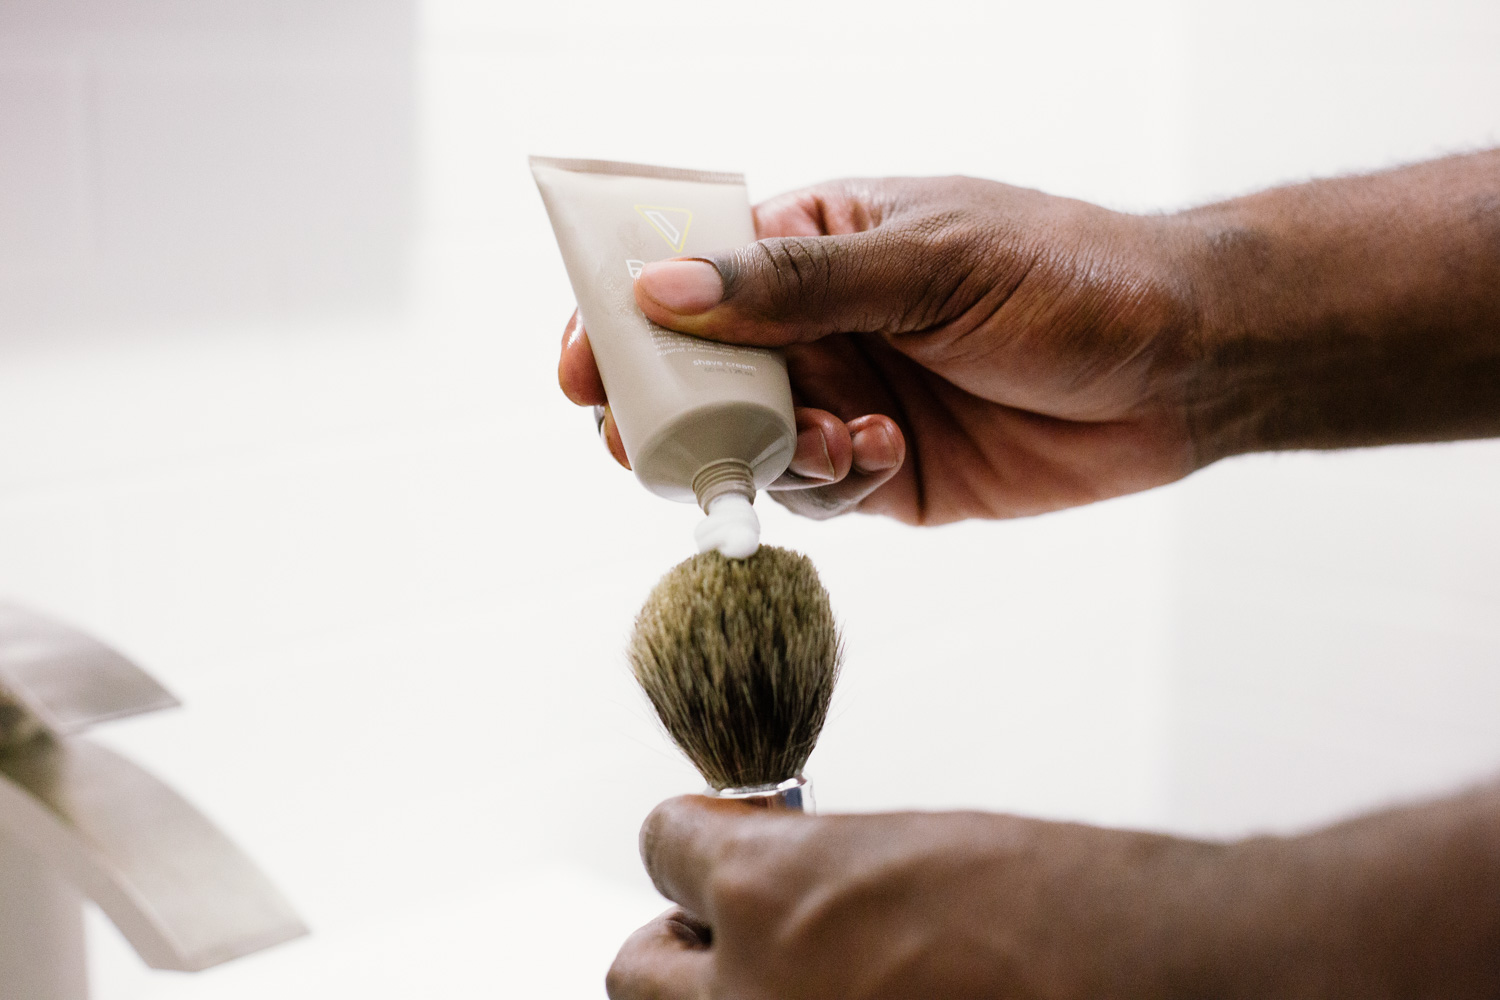 Image of applying shaving cream on brush